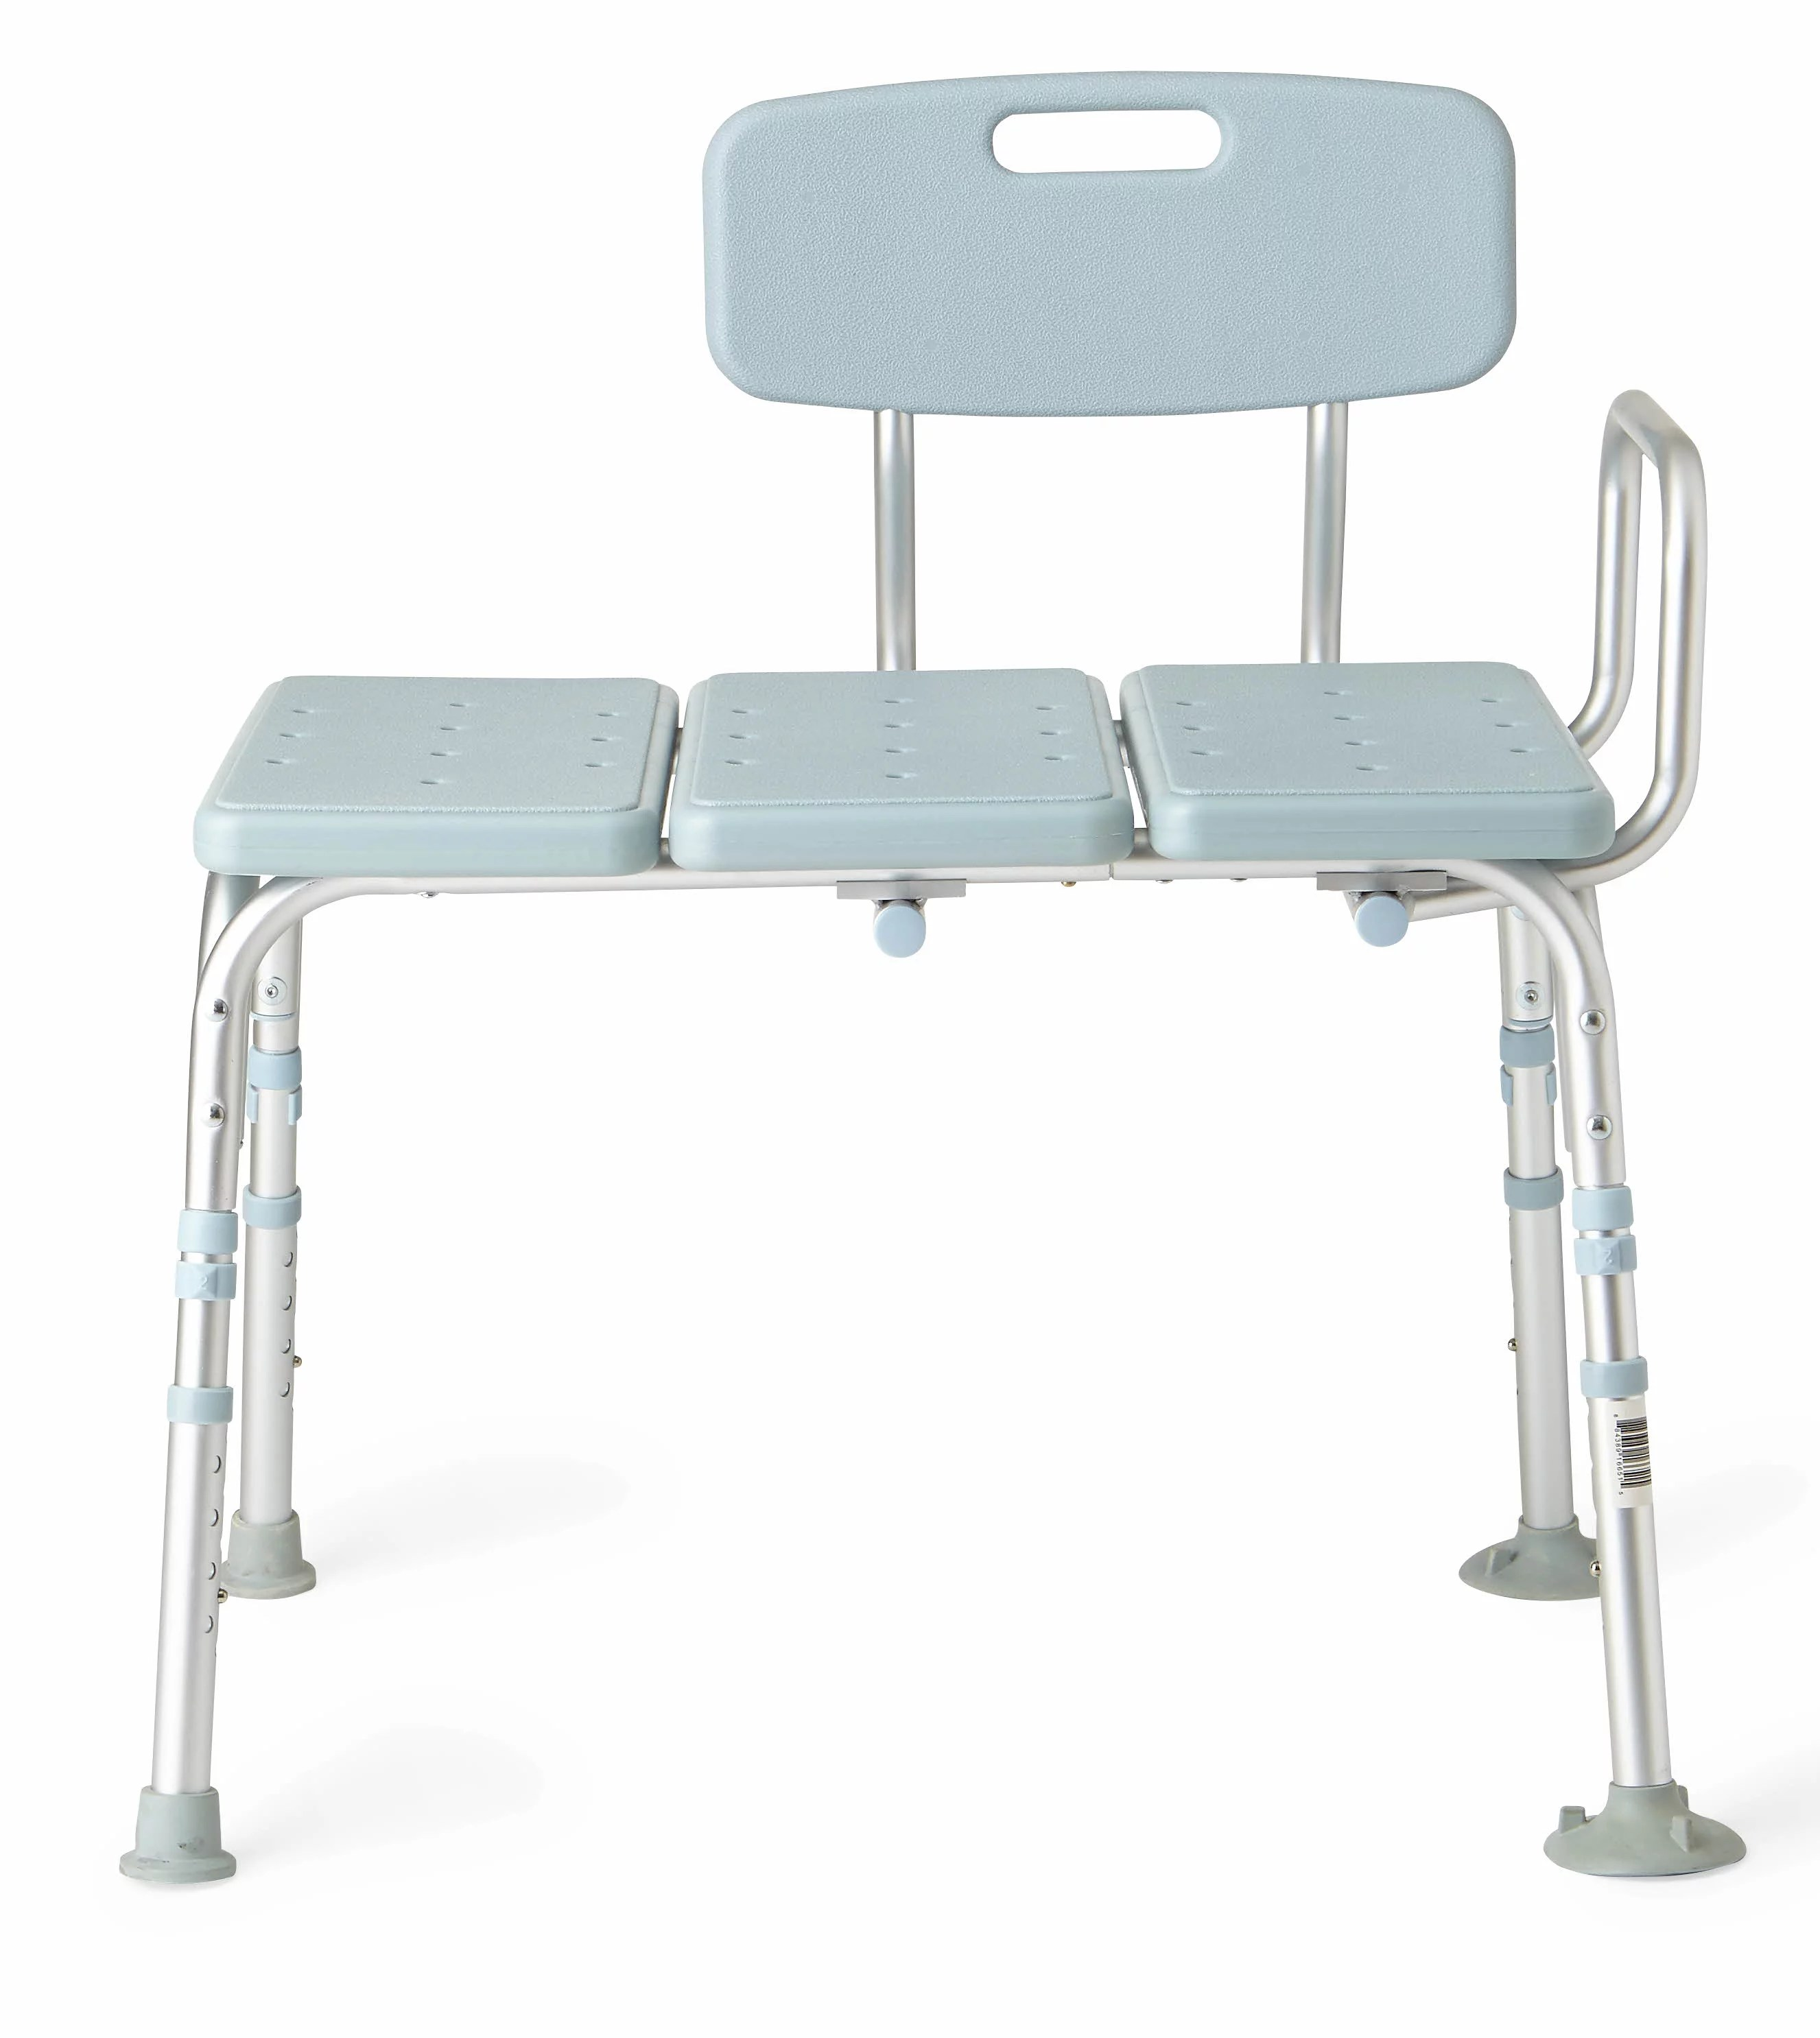 medline tub transfer bench with back microban antimicrobial protection 300lb weight capacity blue seat and chair back